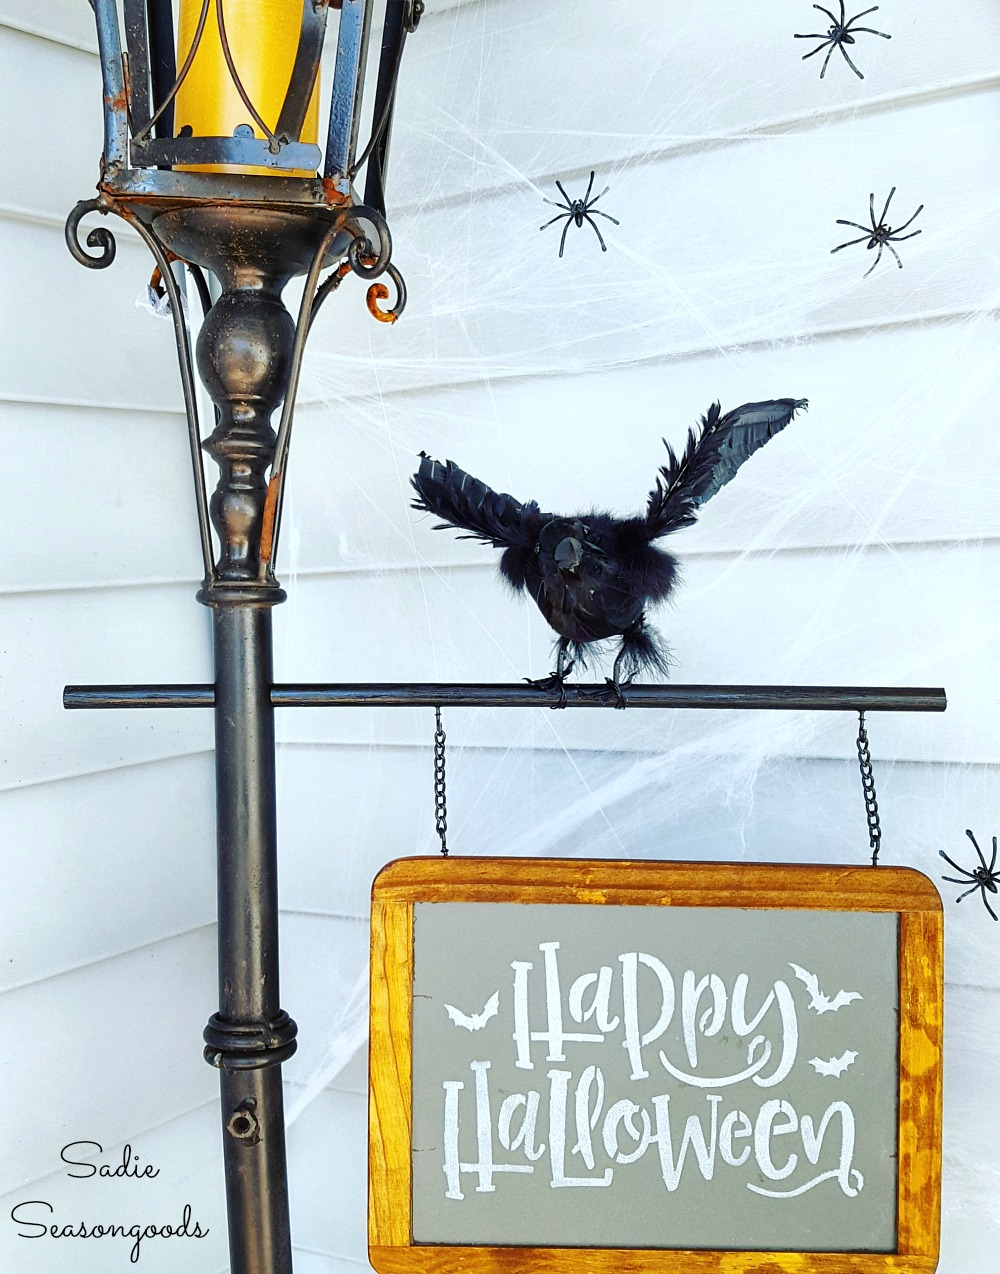 Halloween porch decorations with a Halloween sign on a small chalkboard for Hitchcock style decor